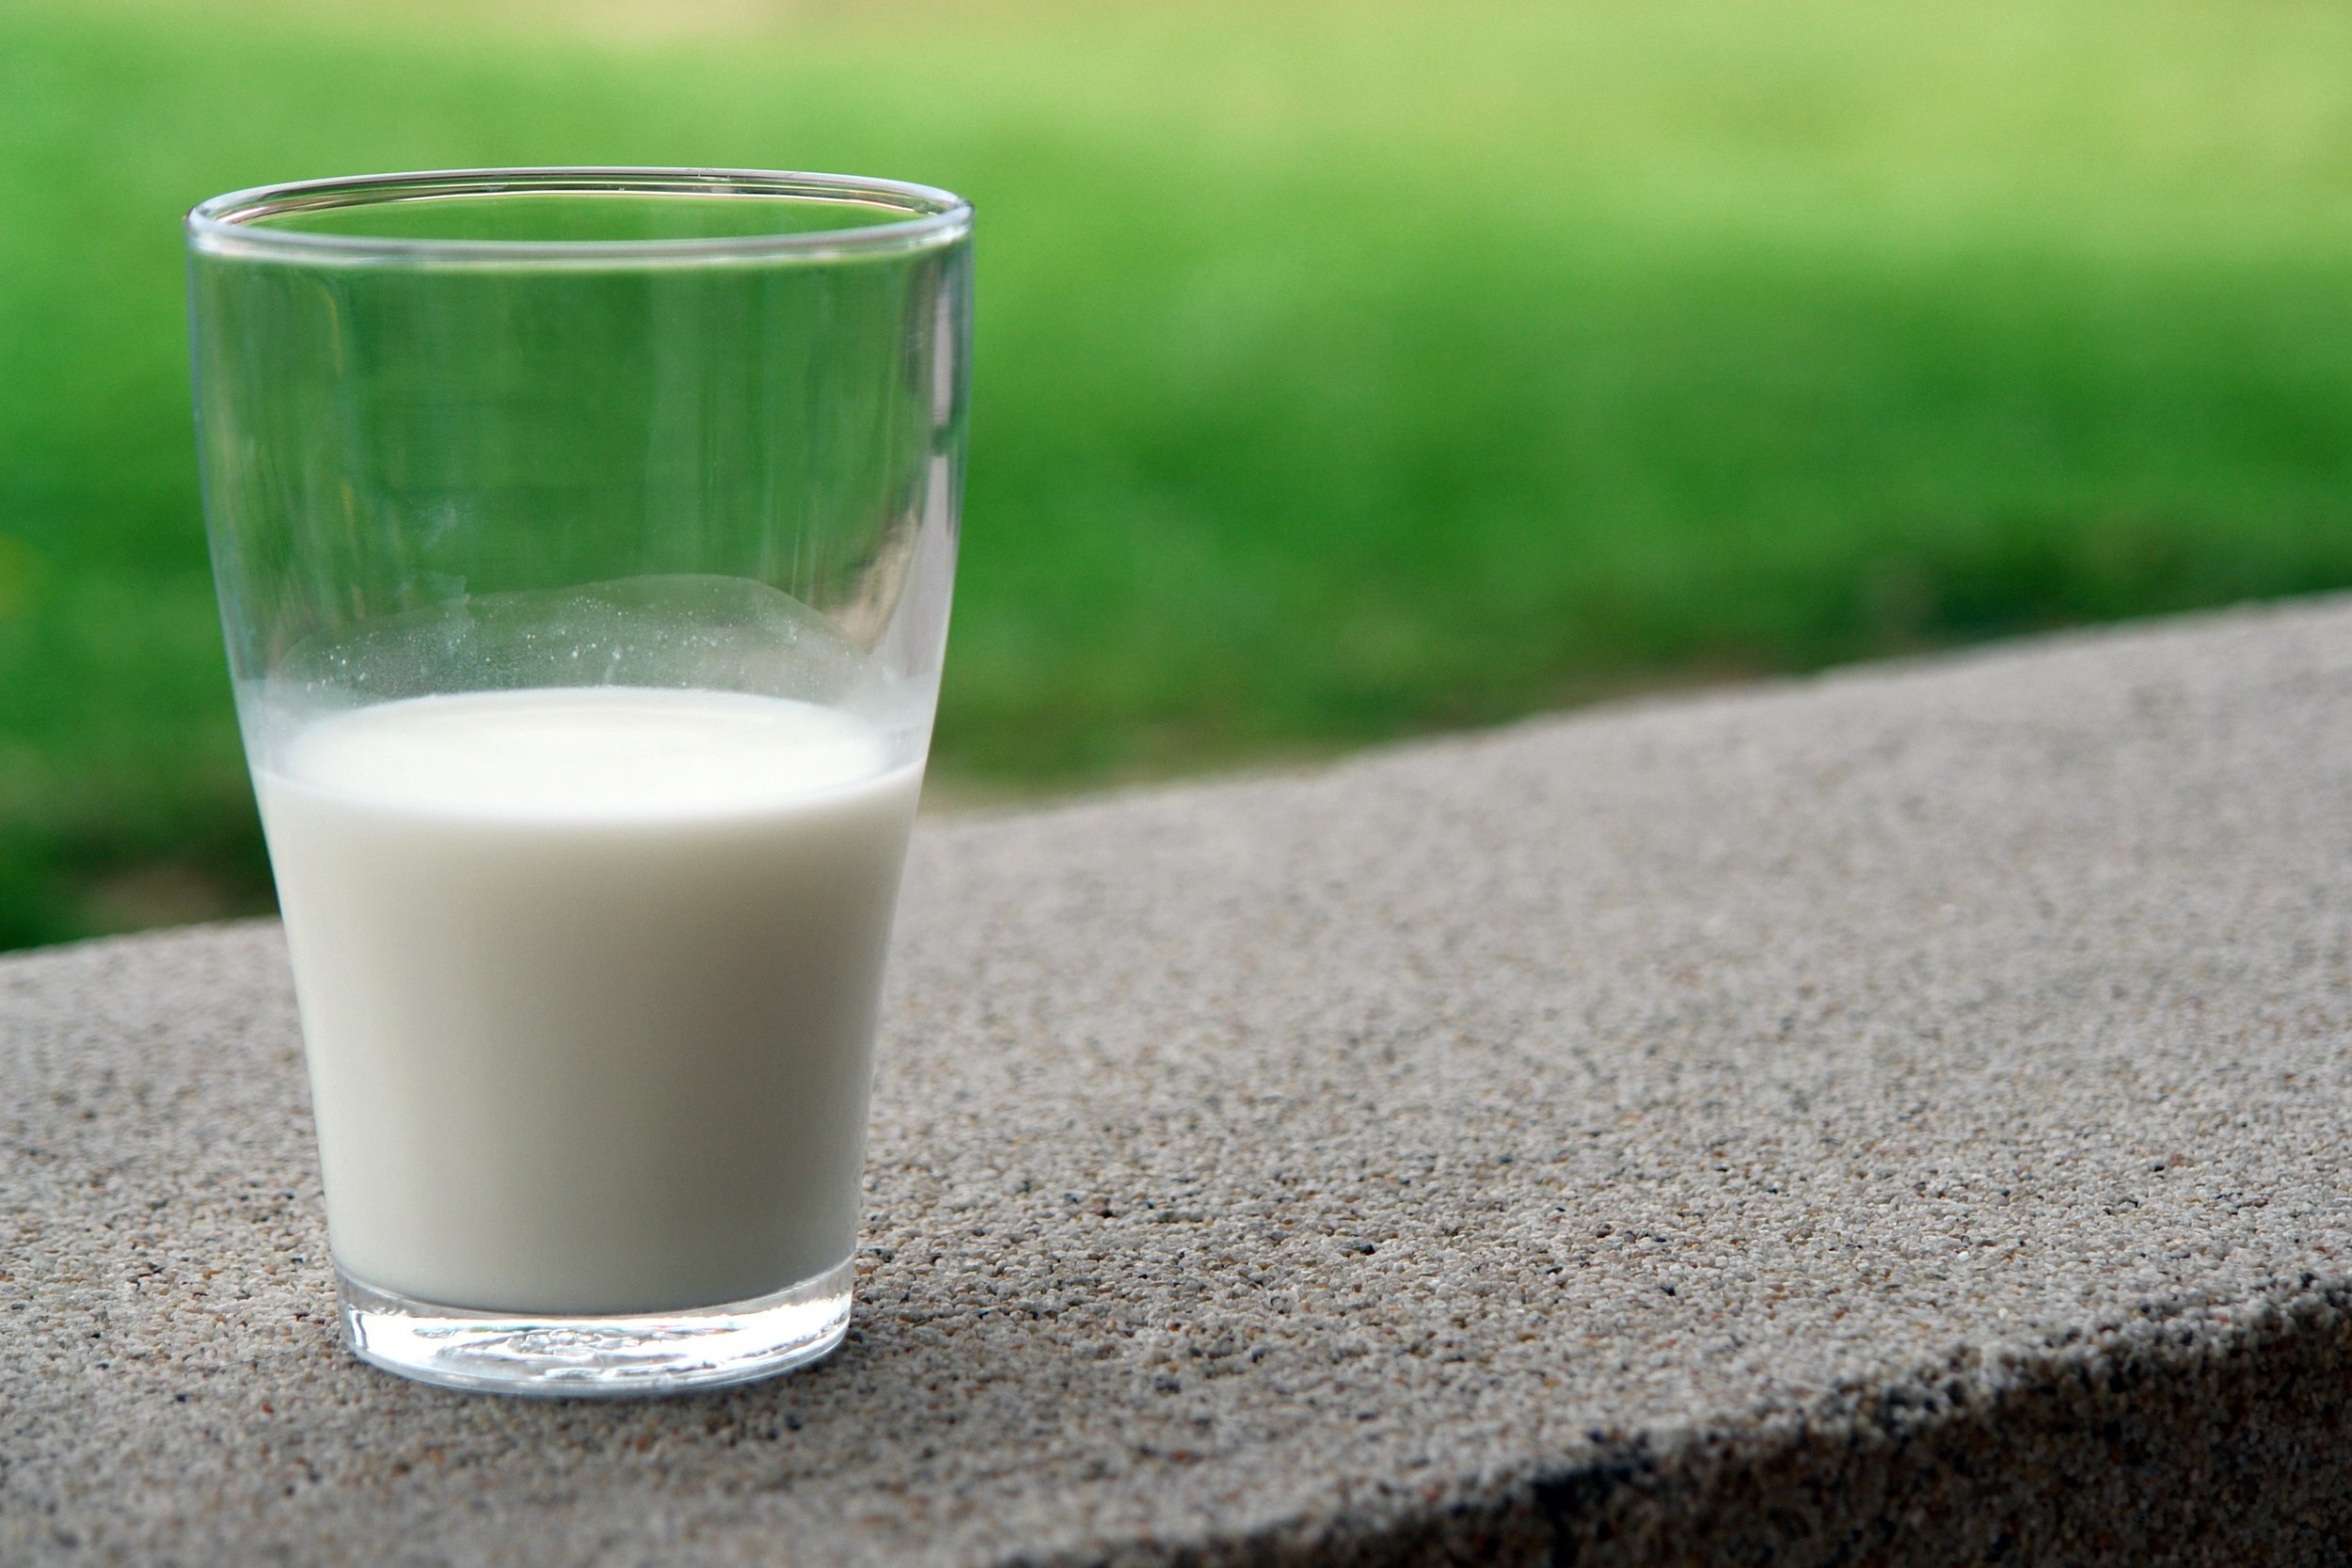 Switching to a nut-based milk over dairy milk can improve your health tremendously  (source)